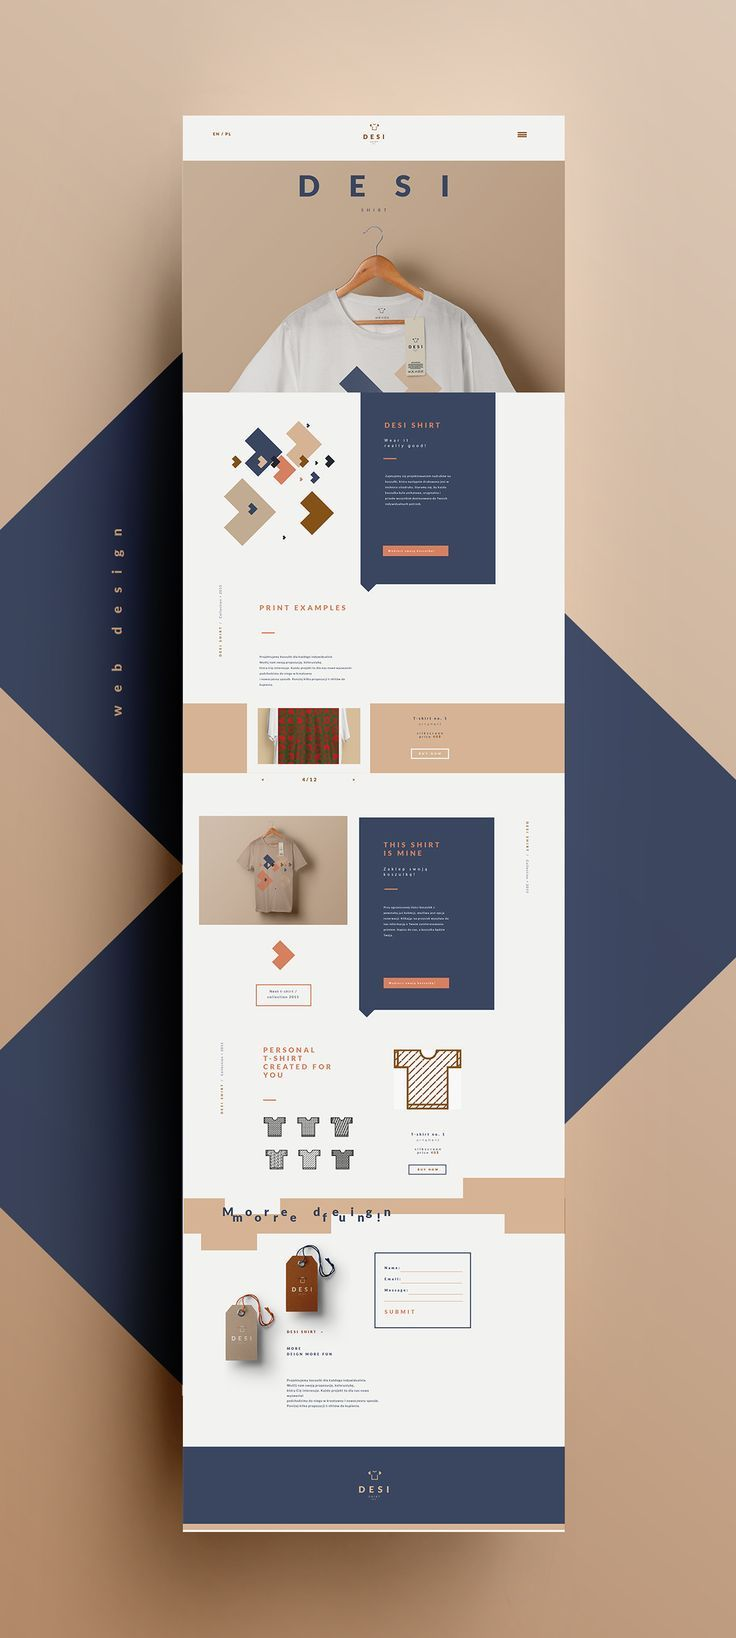 A simple, but nice web design that allows its viewers to customize their own clothing. Solid job! #Diseño #Design #creative #Inspiration #layout #web #composición #Diseño  #brand #branding #website #online #WebDesign